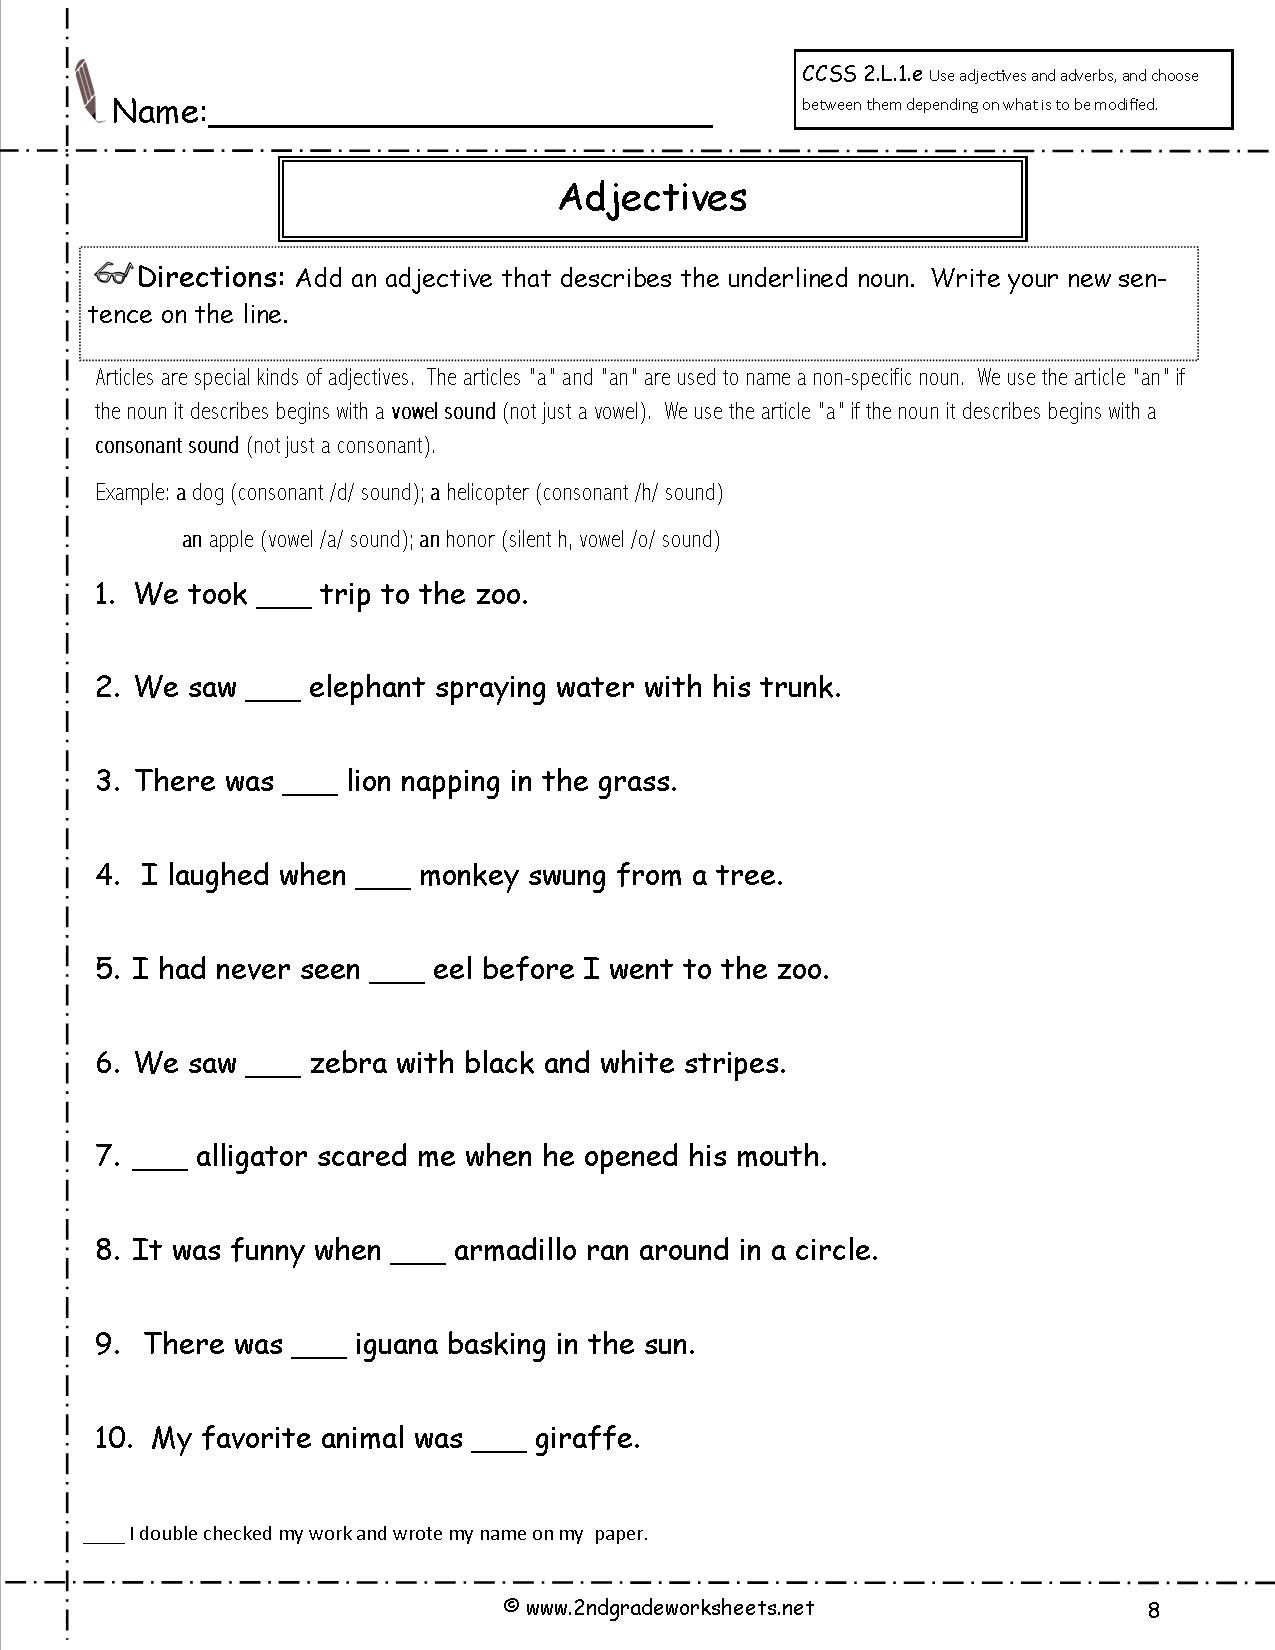 A Or An Worksheet For Grade 2 - Google Search | Education - Free Printable Grammar Worksheets For 2Nd Grade